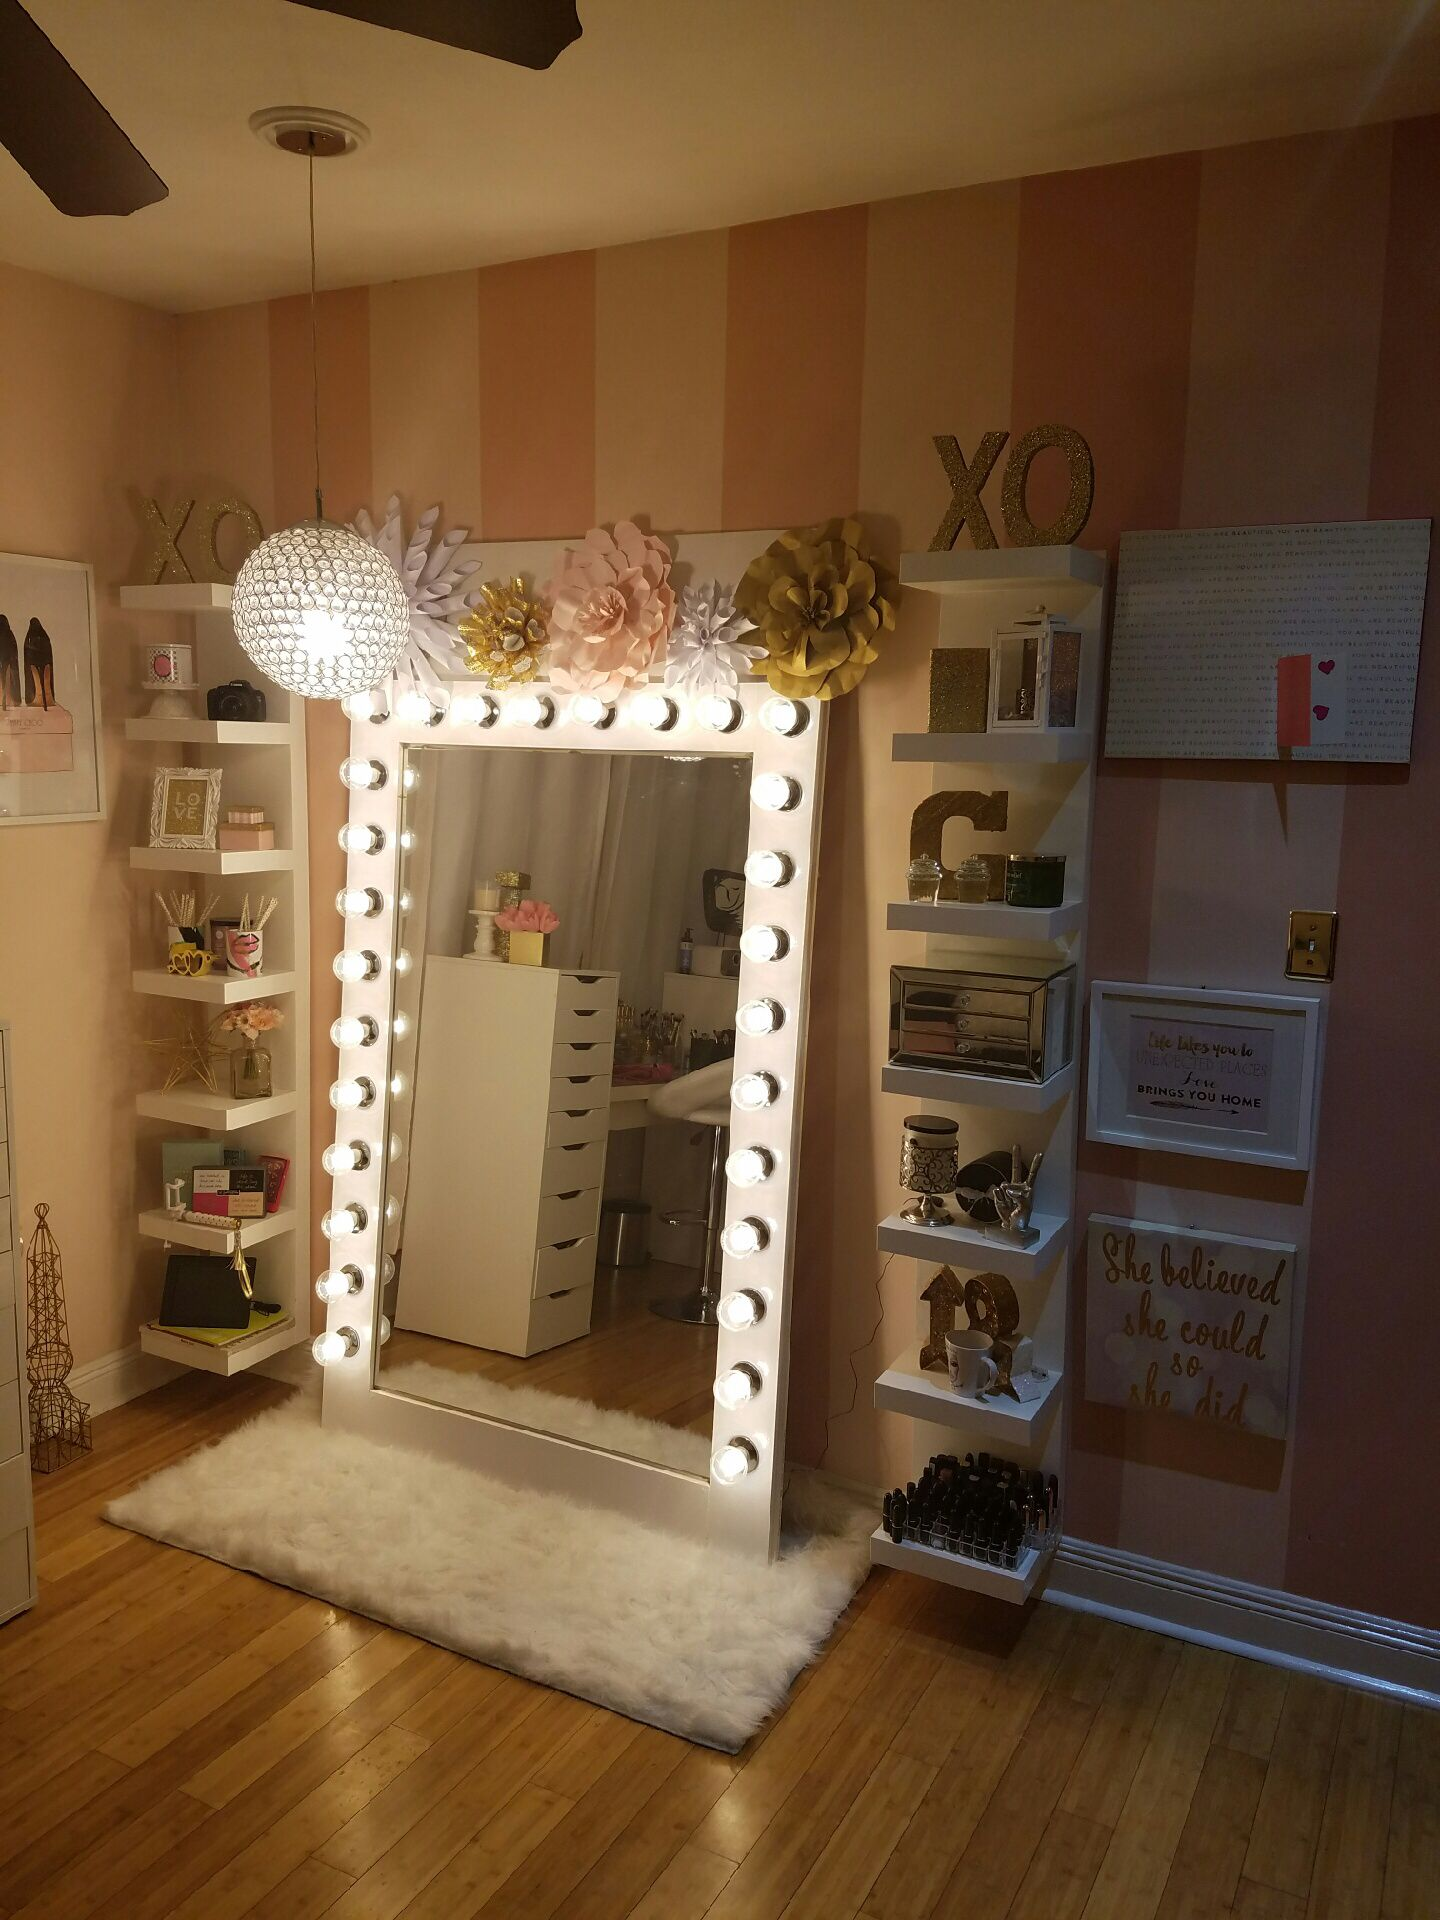 Wall Vanity Mirror With Lights makeup storage with diy style hollywood glam light | my new makeup